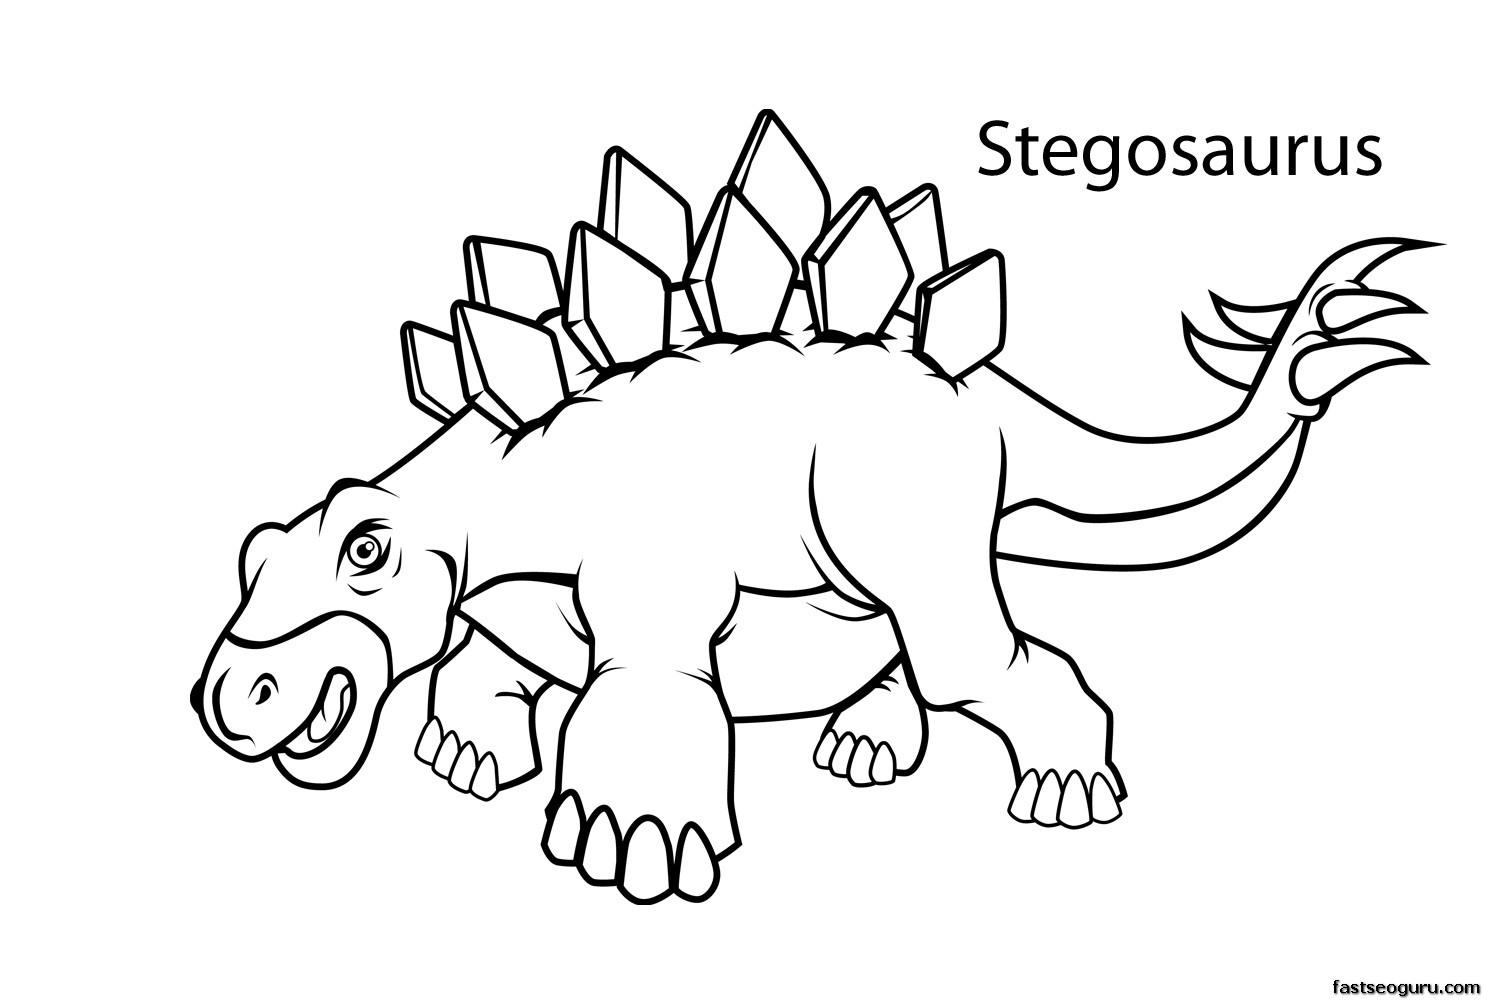 dinosaur with names coloring pages printable dinosaur stegosaurus coloring pages printable with coloring pages dinosaur names